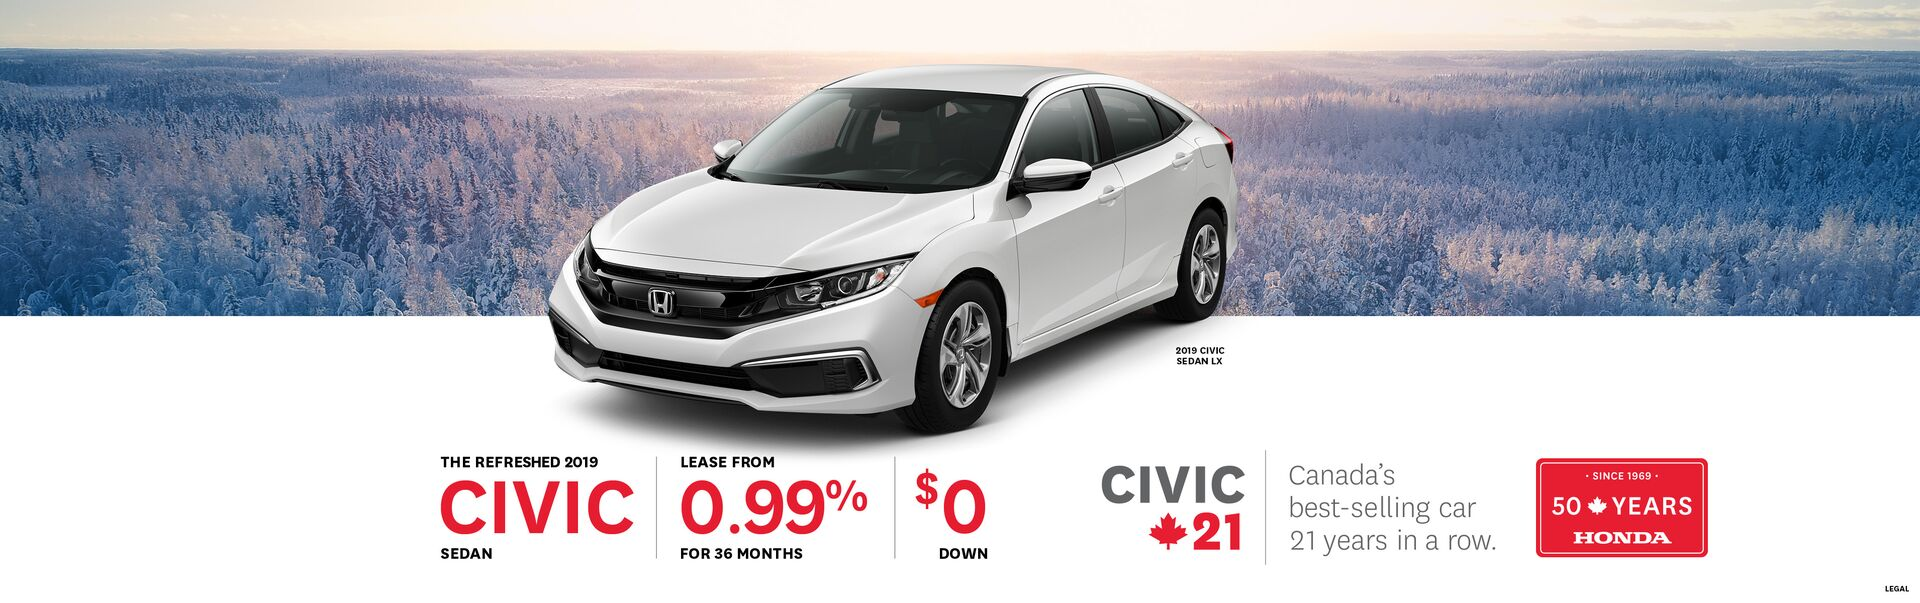 19 civic Jan